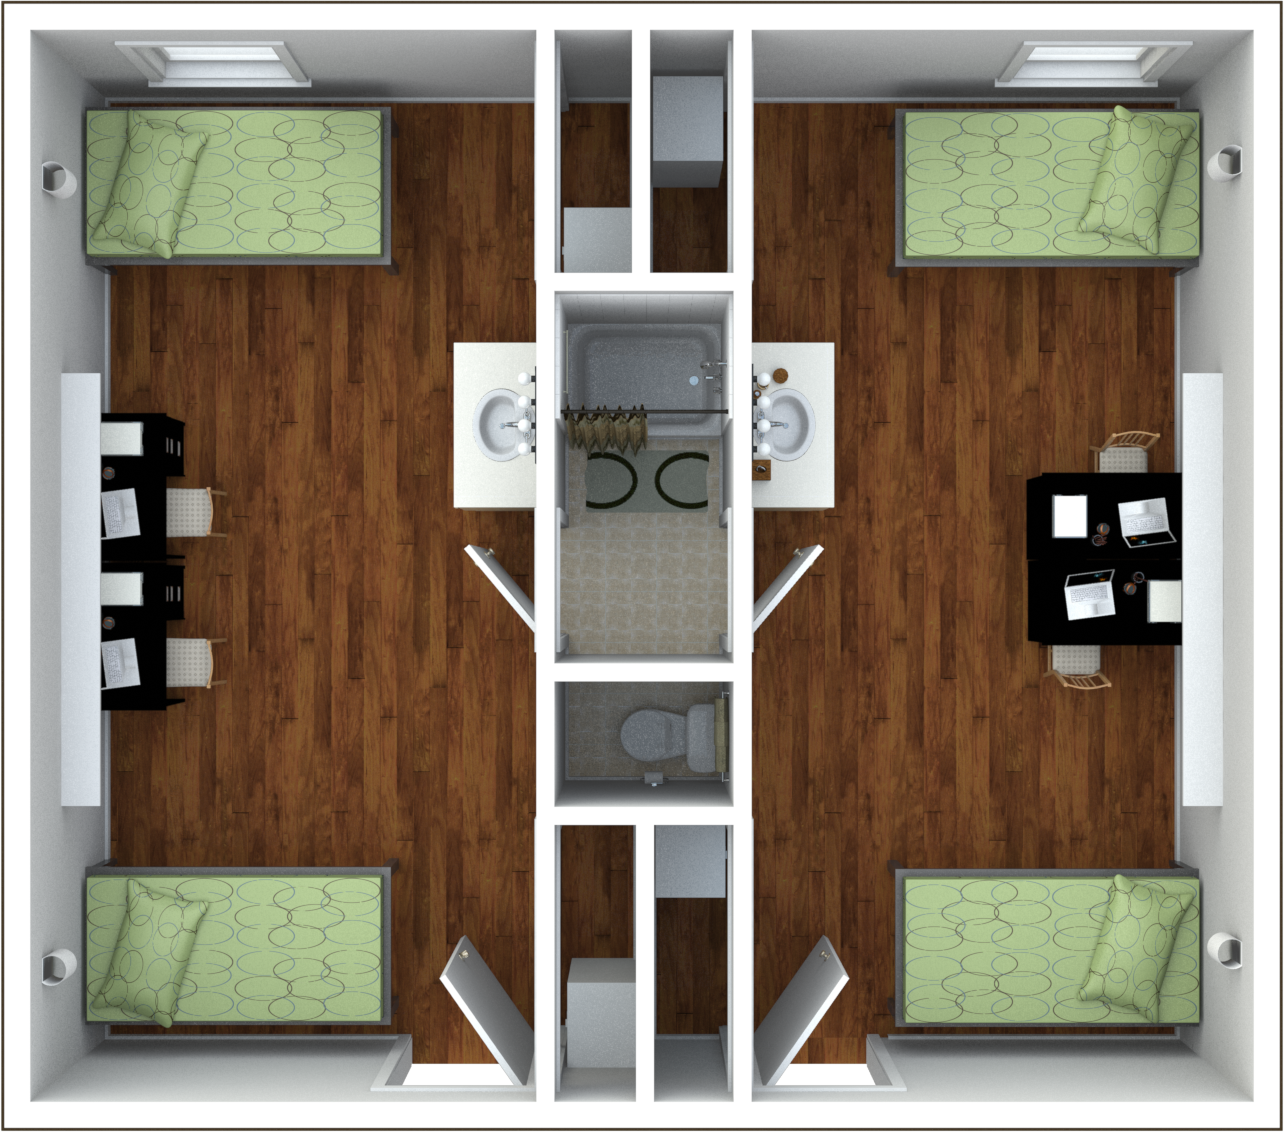 Check Out This Great Student Housing Floor Plan At Granville Towers In Chapel  Hill, NC